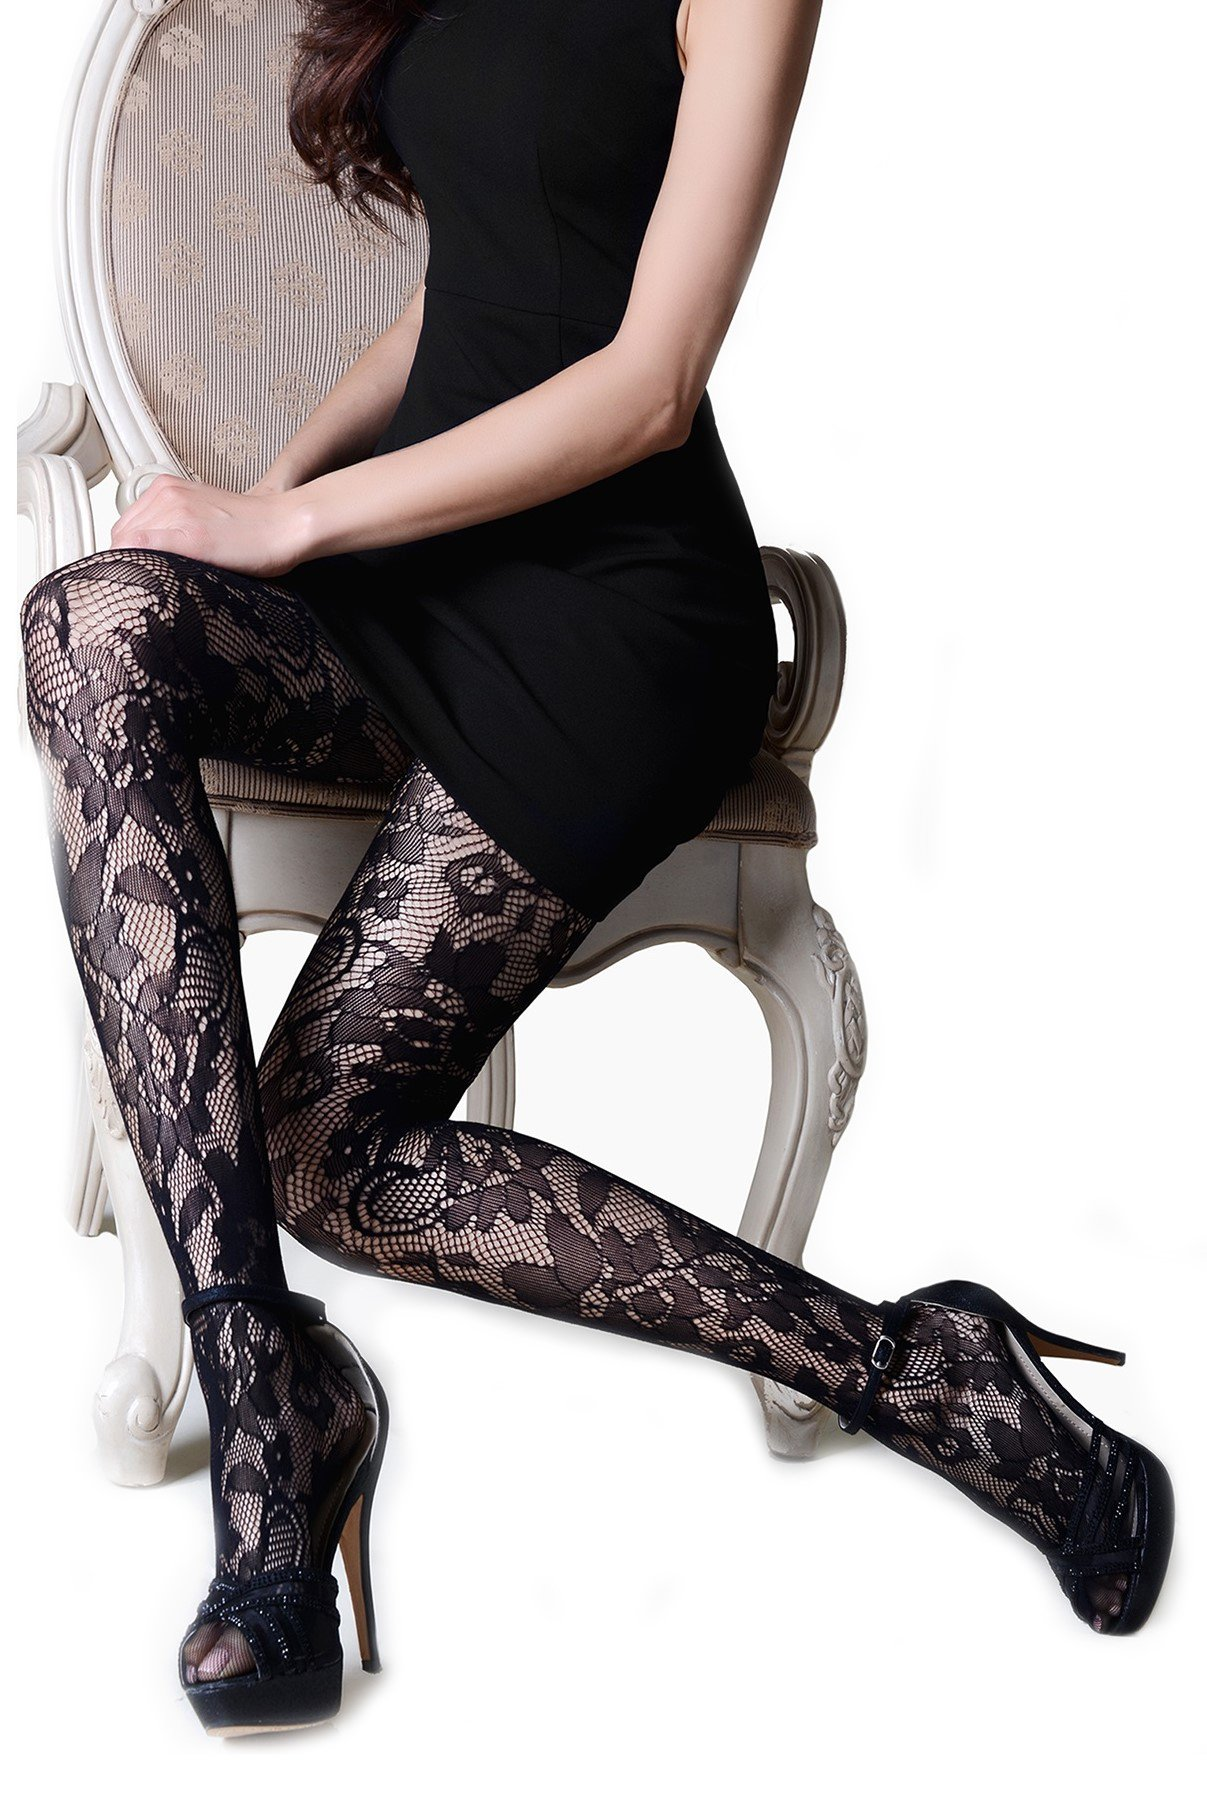 ICONOFLASH Women's Patterned Fishnet Stocking Tights (Regular, Loveland Floral)